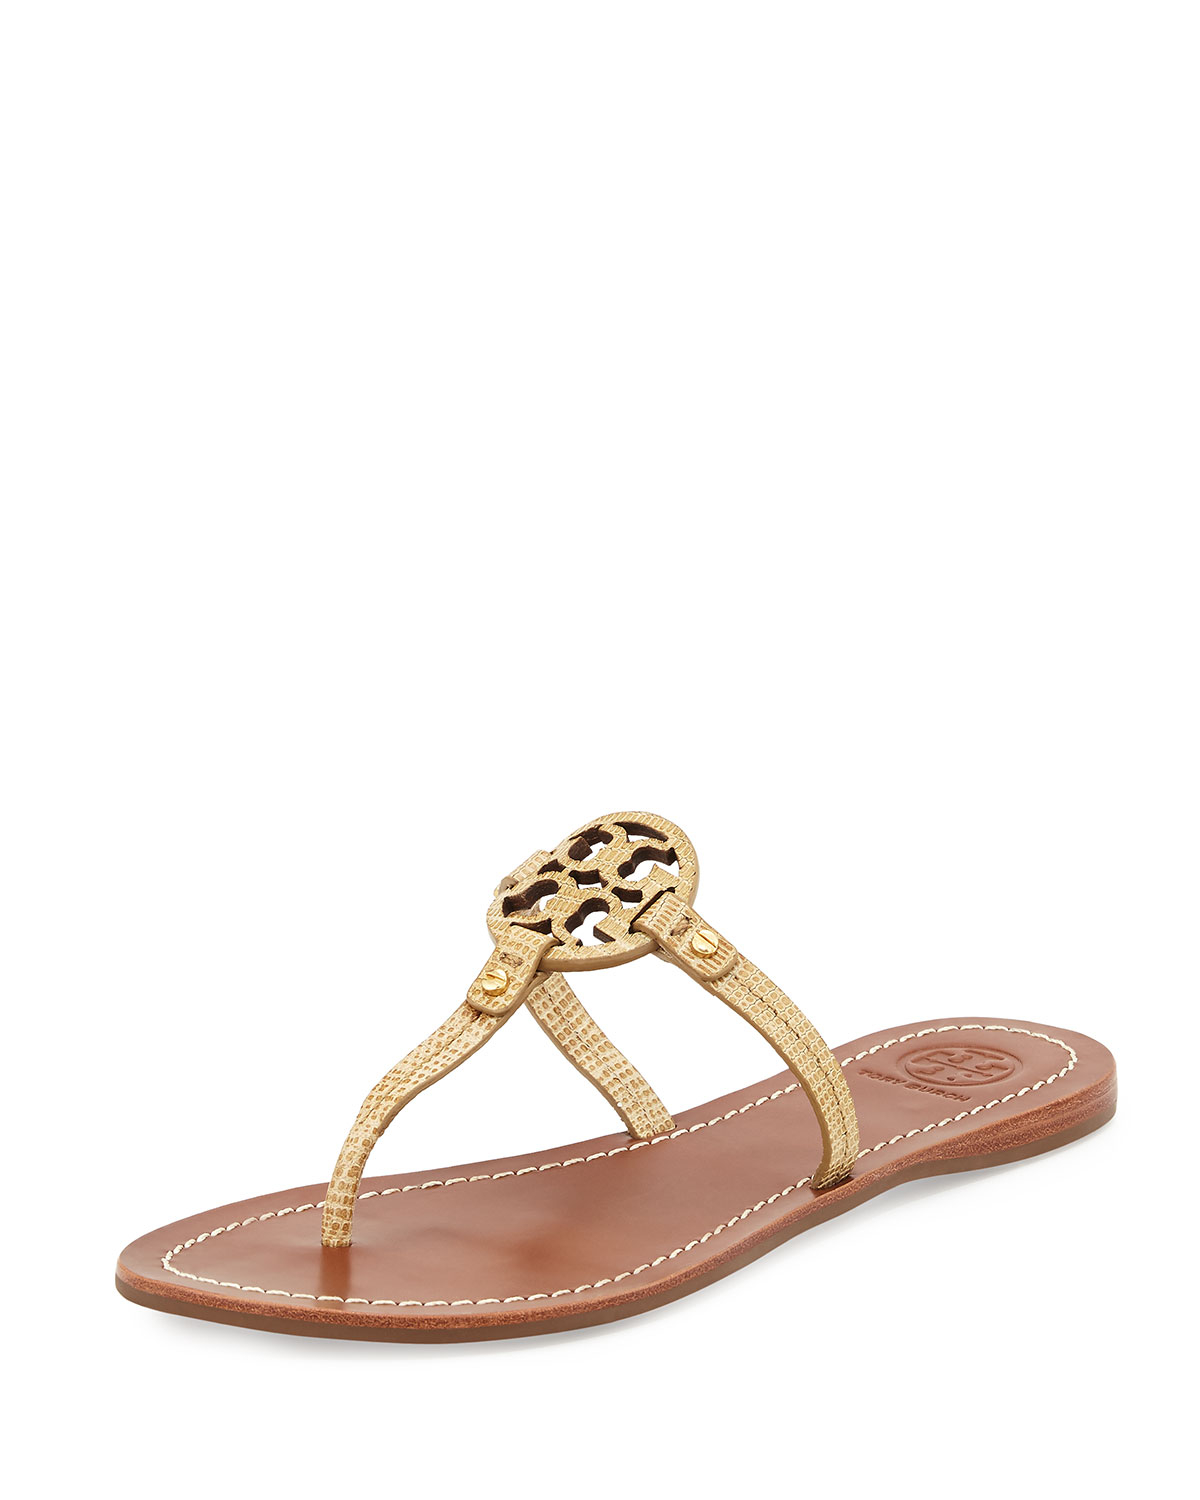 793b30735443 Lyst - Tory Burch Mini Miller Snake-Embossed Sandals